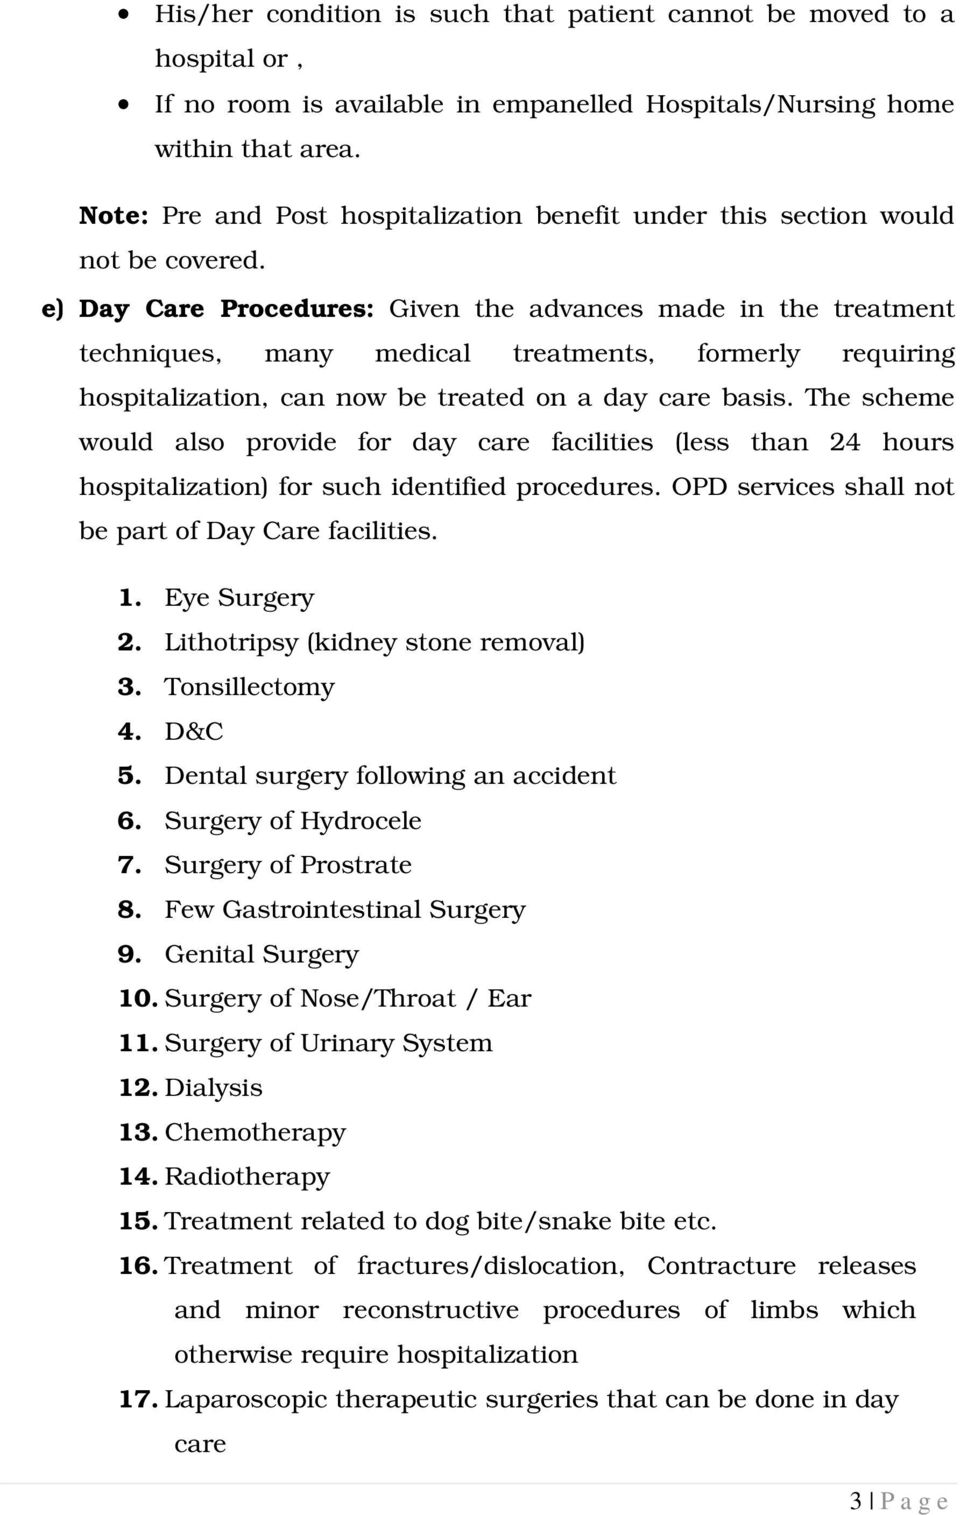 e) Day Care Procedures: Given the advances made in the treatment techniques, many medical treatments, formerly requiring hospitalization, can now be treated on a day care basis.